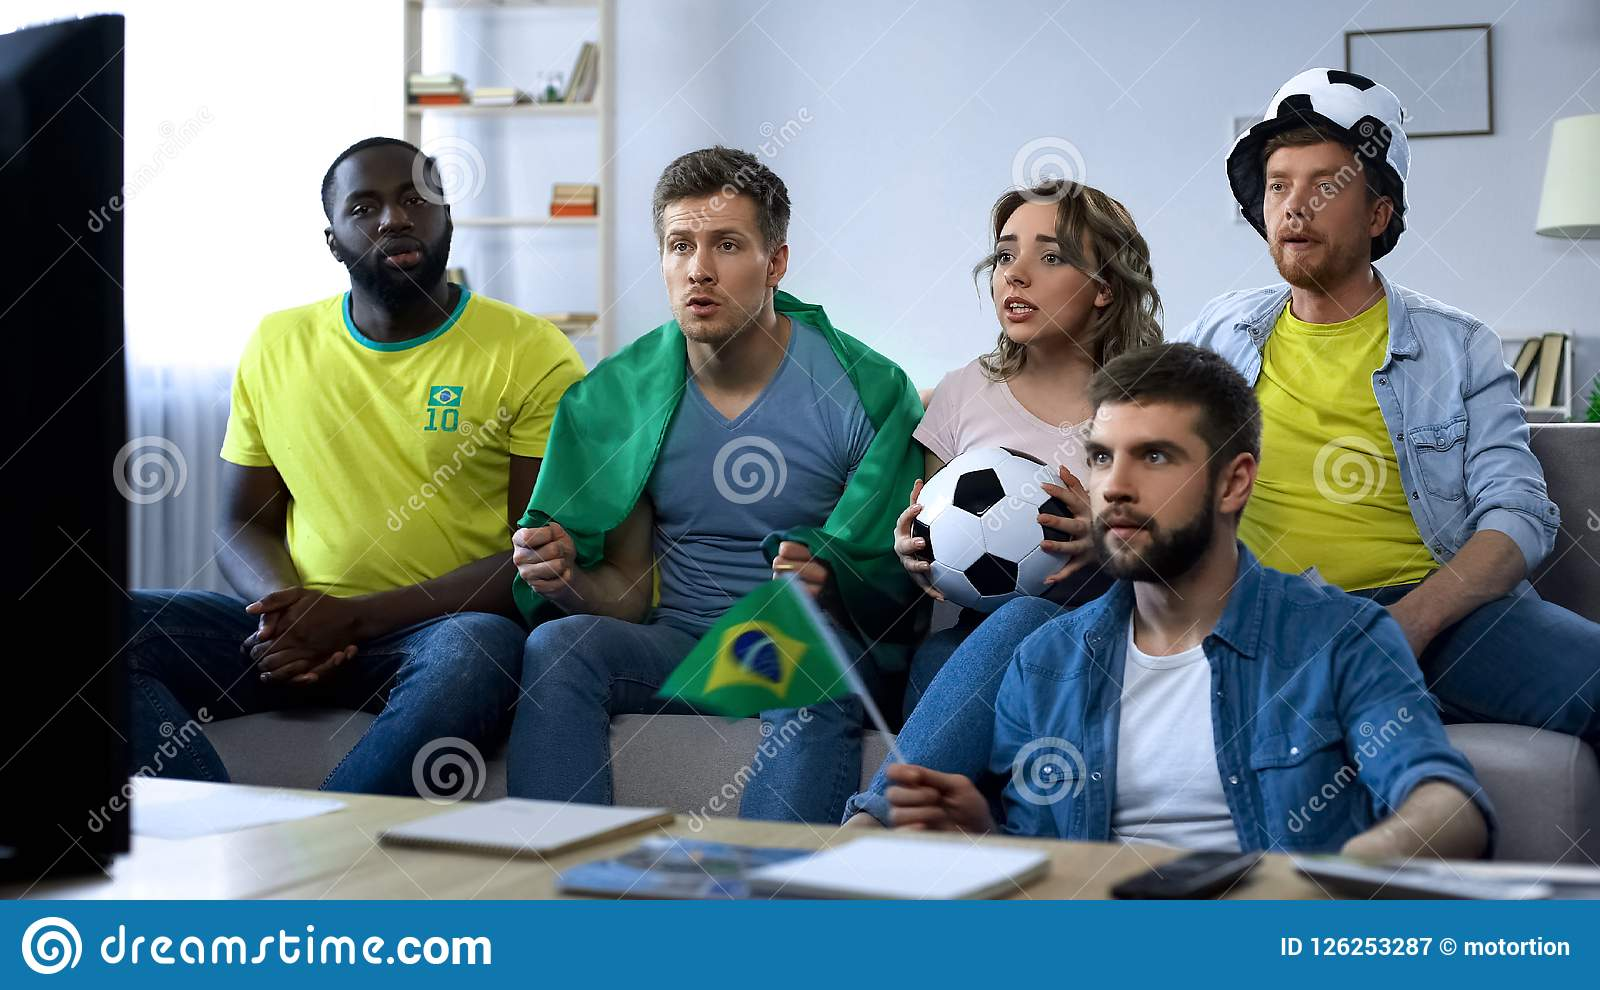 Brazilian group of friends watching football game on tv at home, togetherness